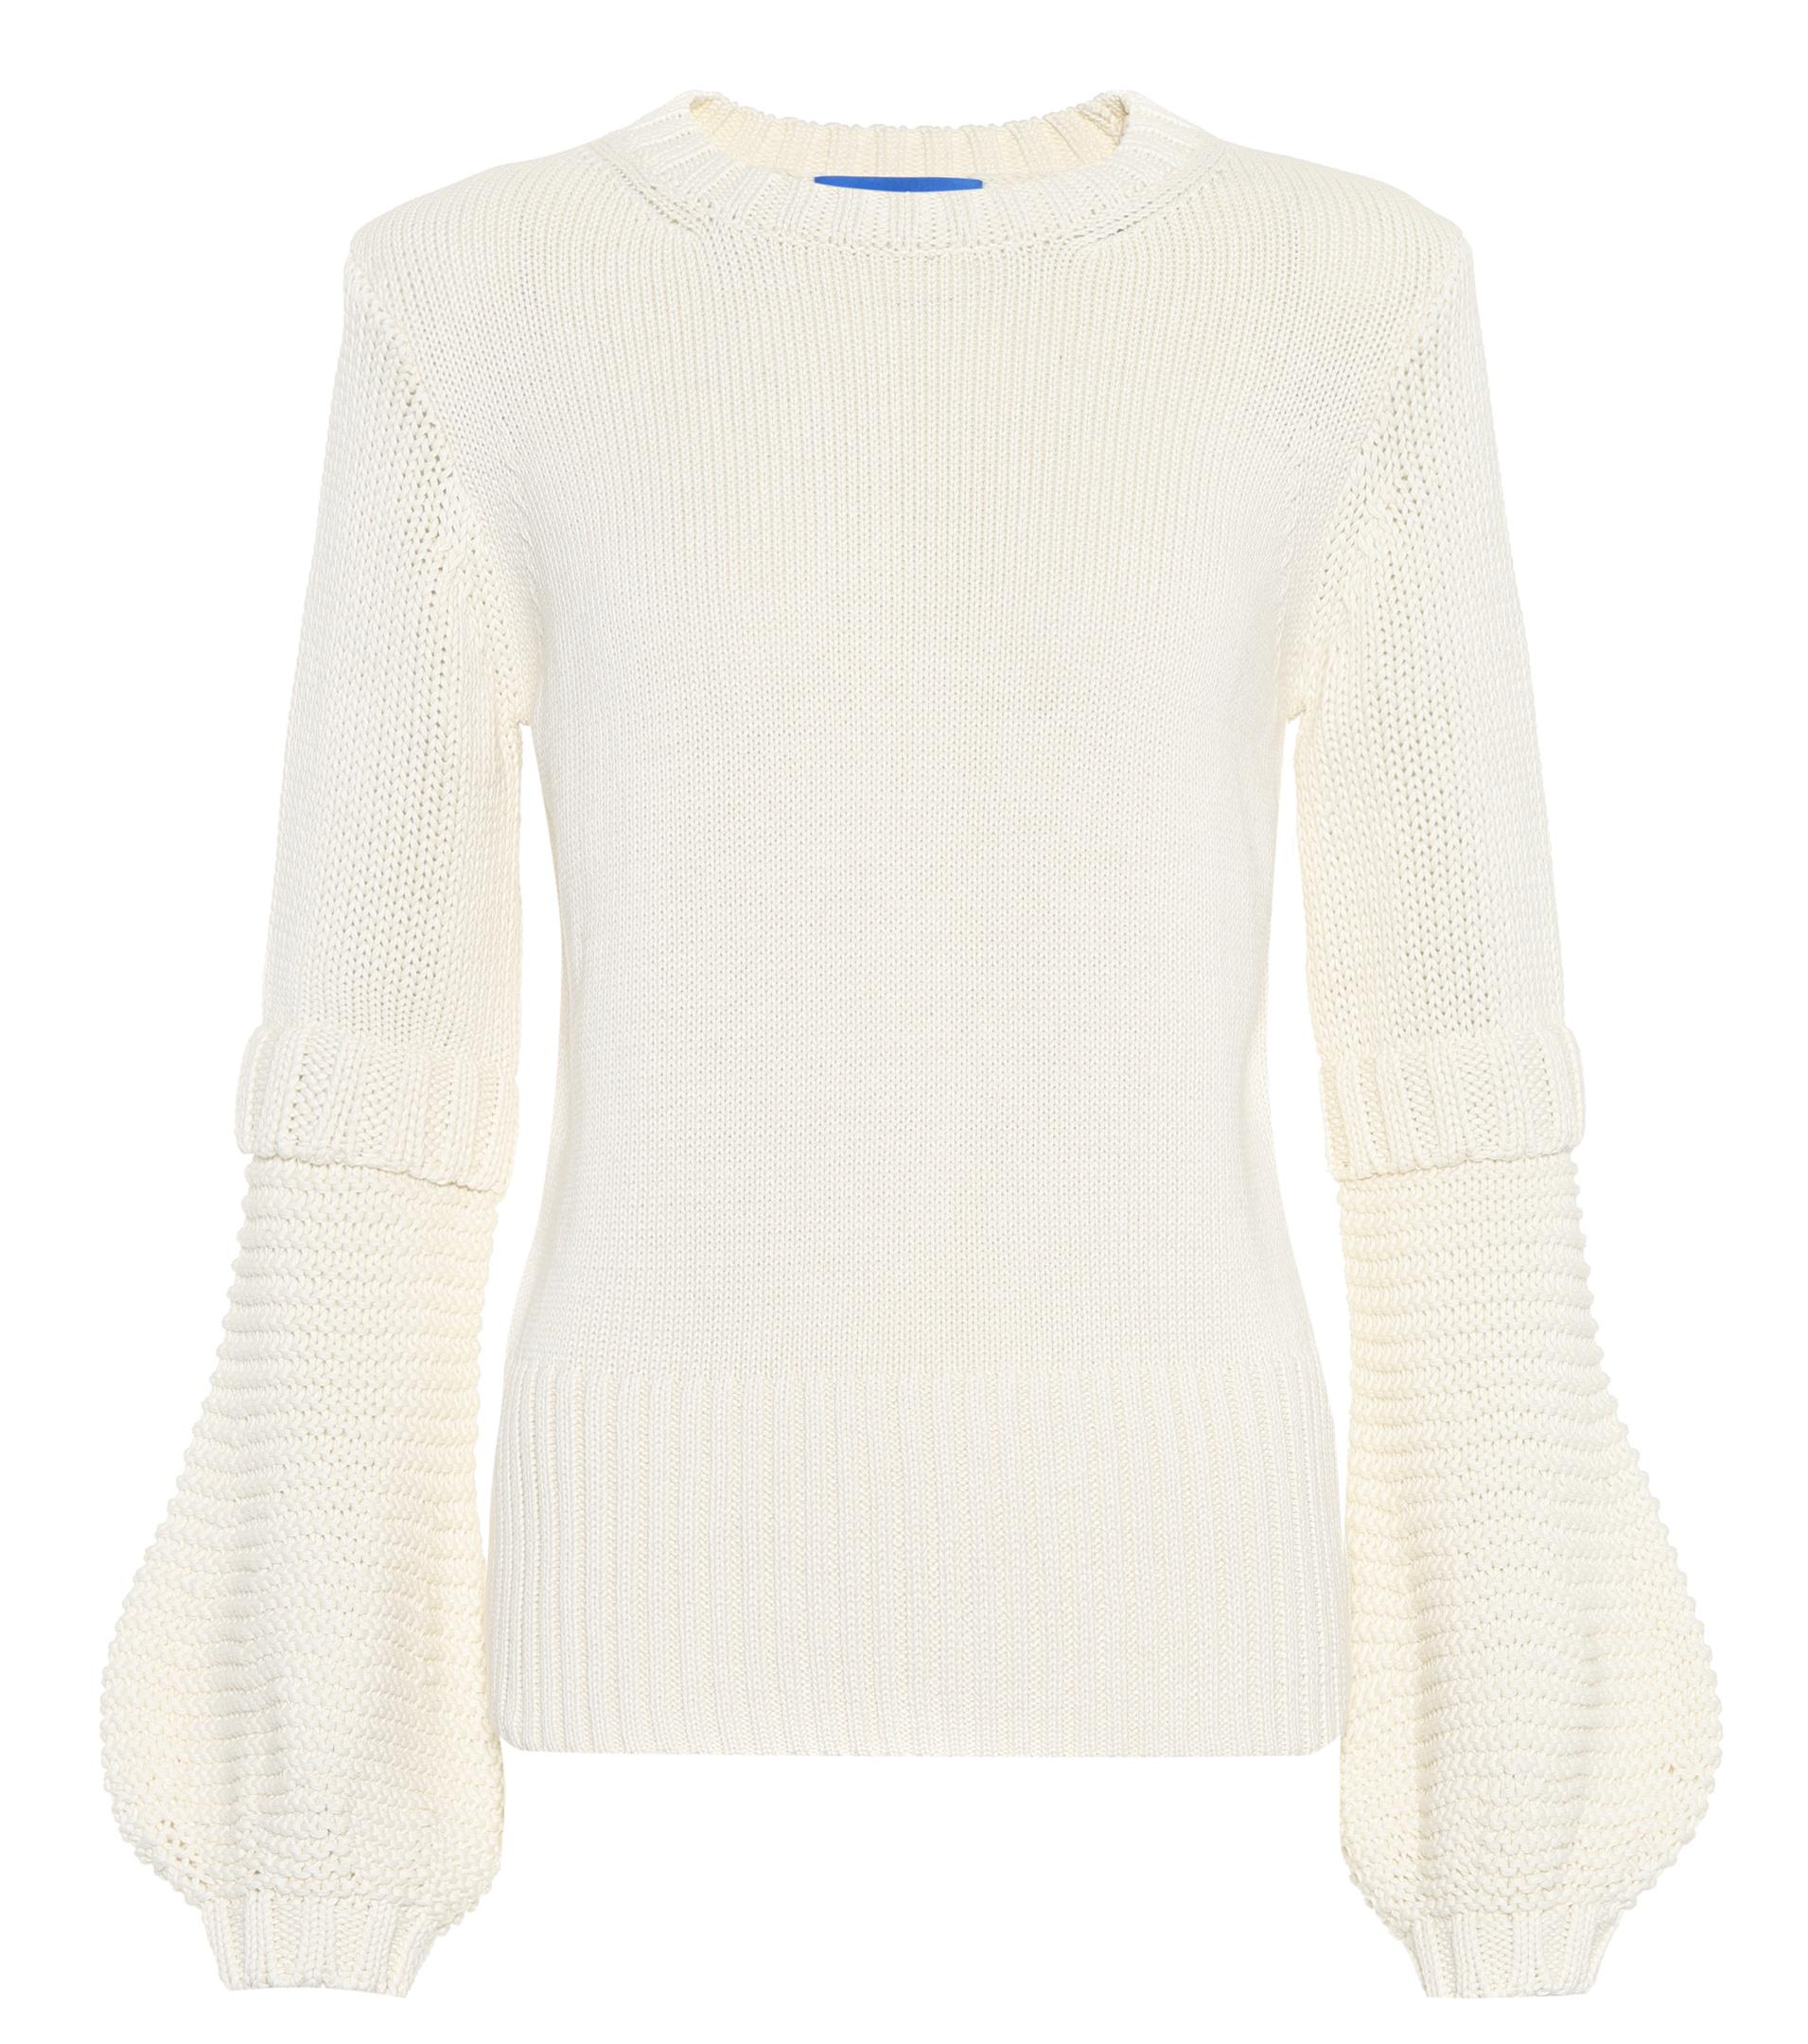 Mih jeans Leeson Cotton Sweater in White | Lyst